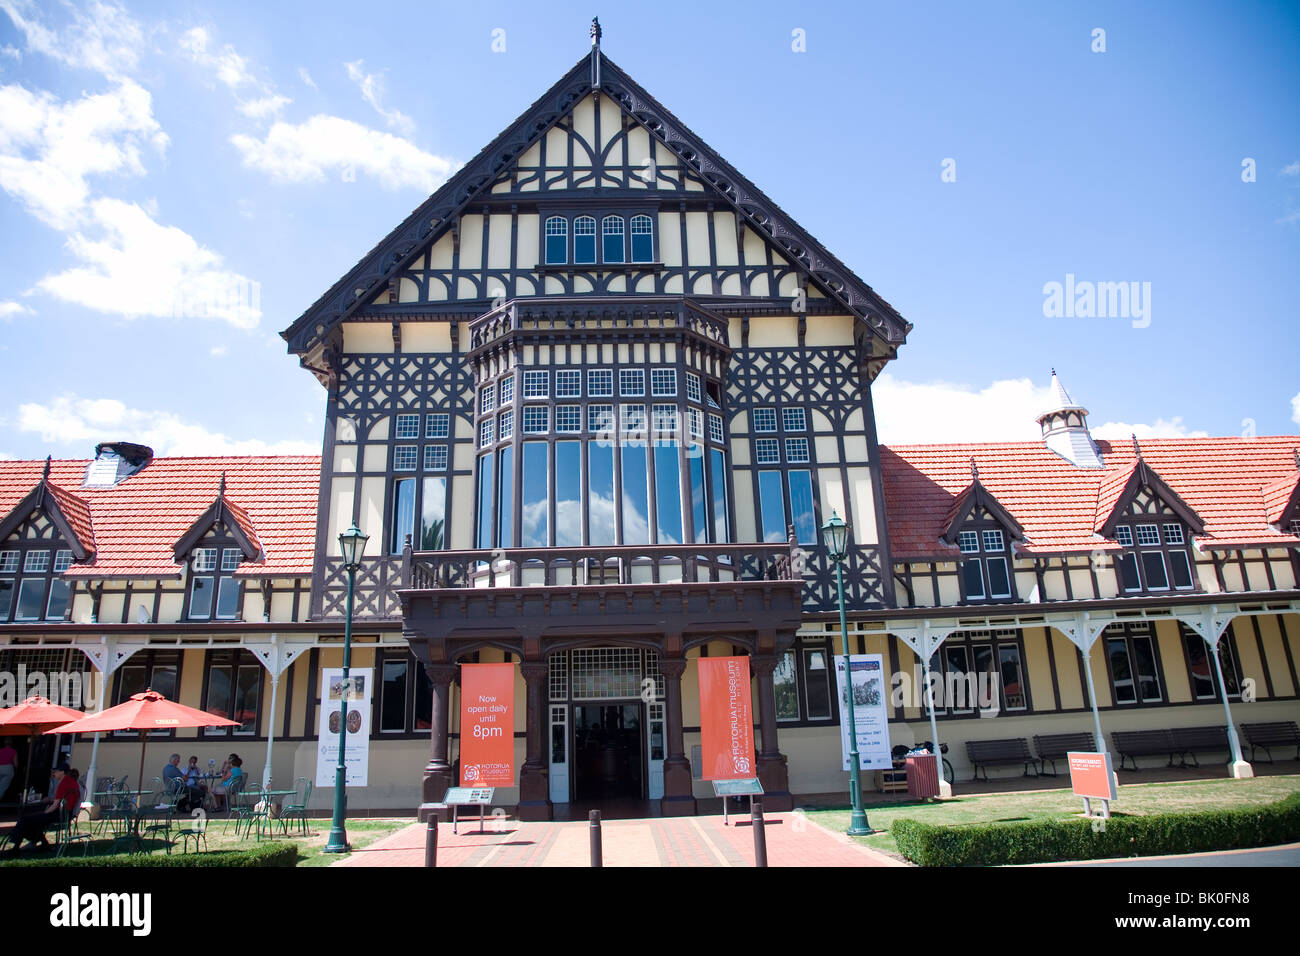 Tudor Architecture with its ornate elizabethan or tudor style architecture the